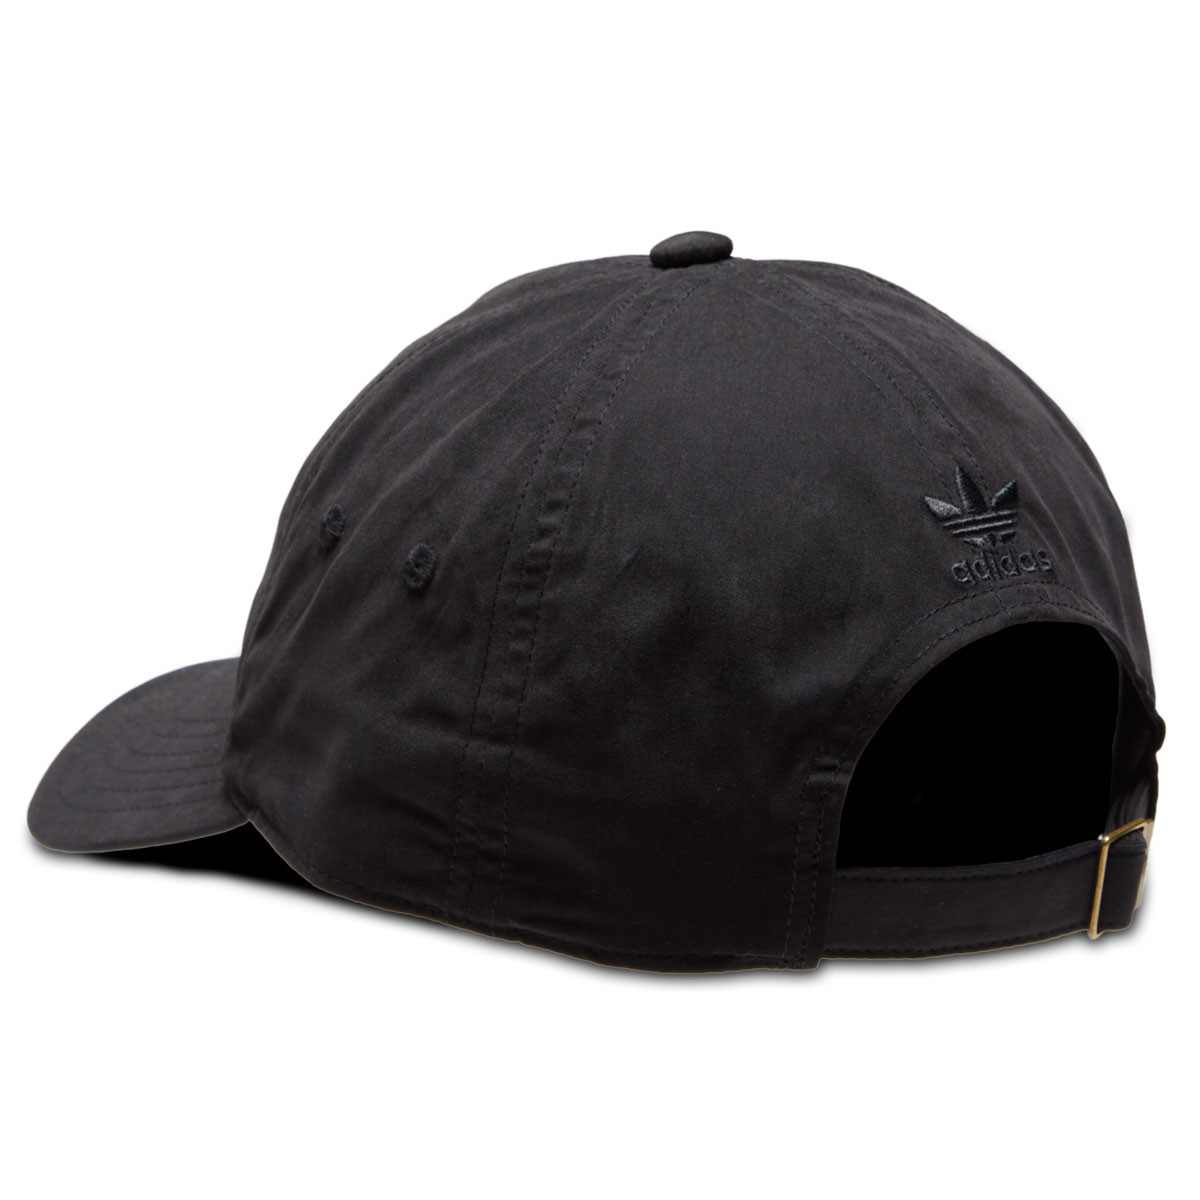 c7005226afb Adidas Originals Relaxed Metal Strapback Hat - Black Antique Gold